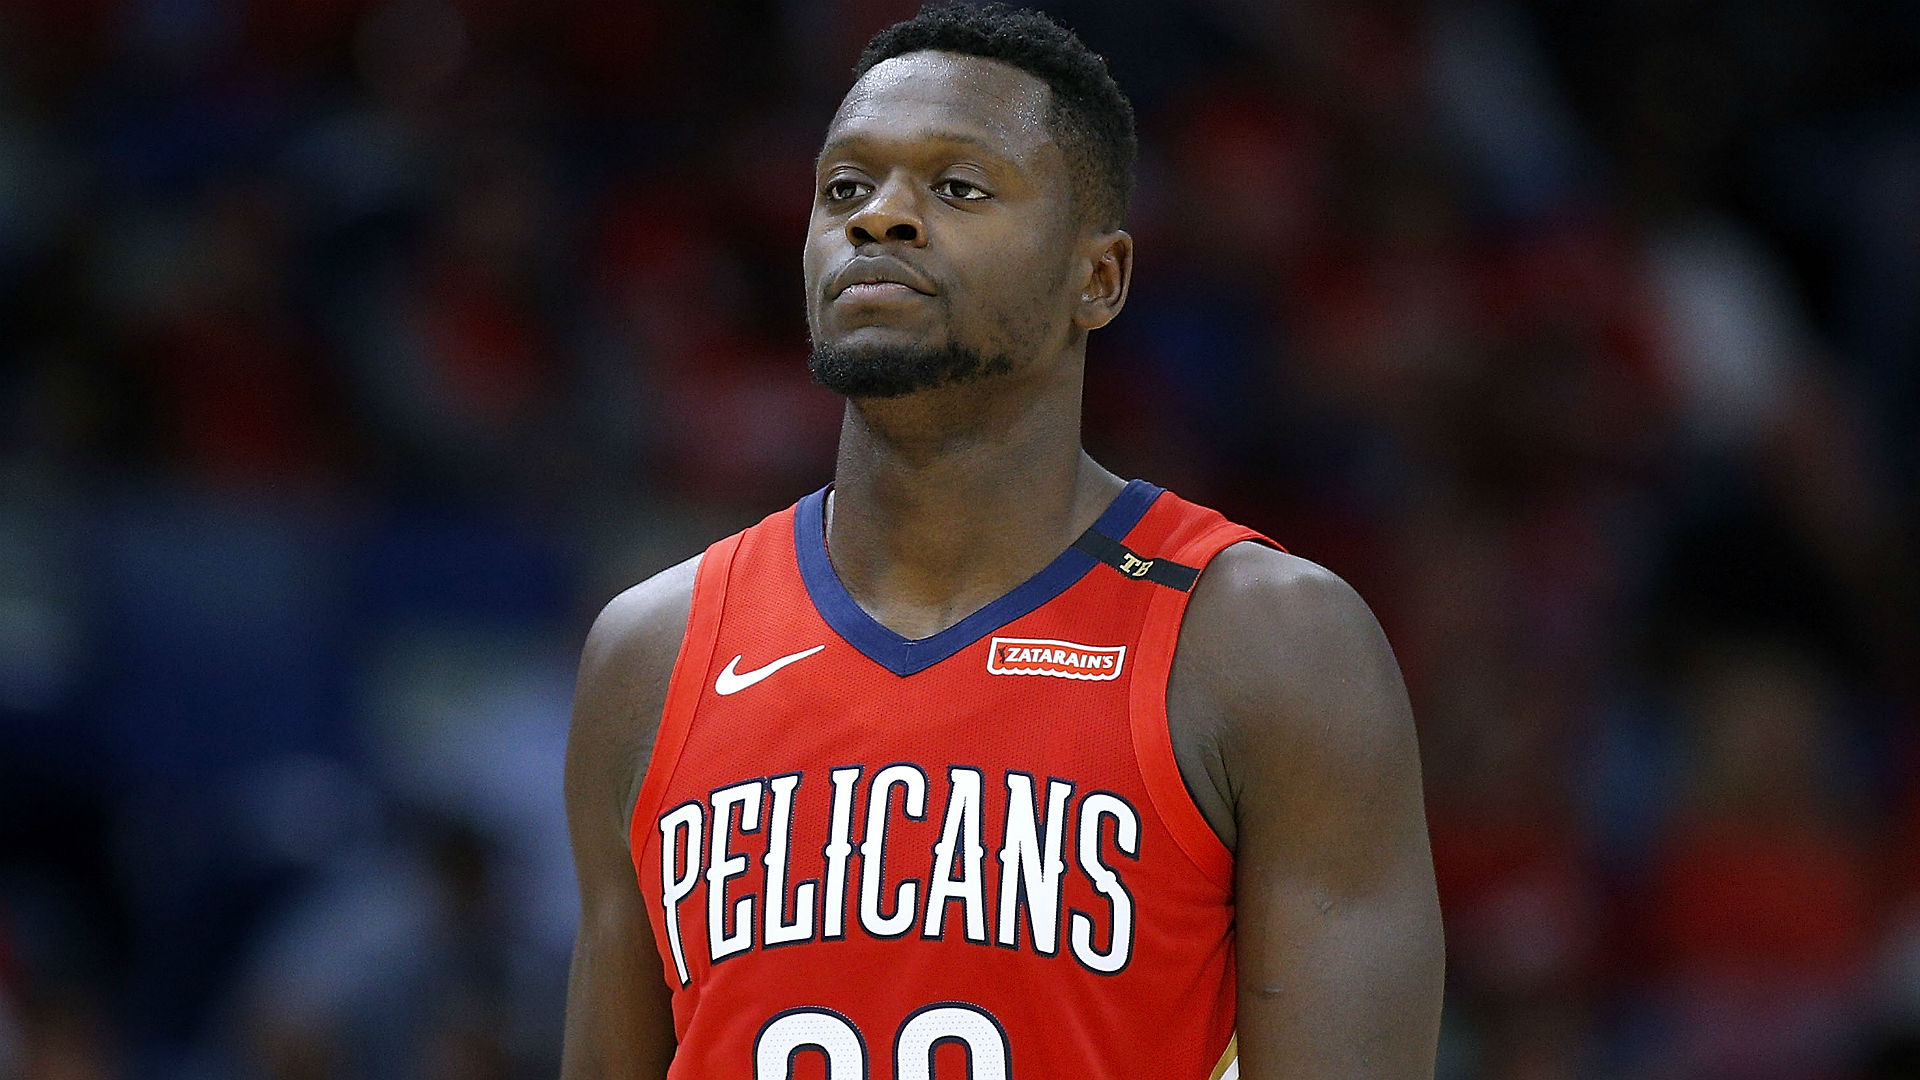 Pelicans' Julius Randle (ankle) will be a game-time decision Wednesday